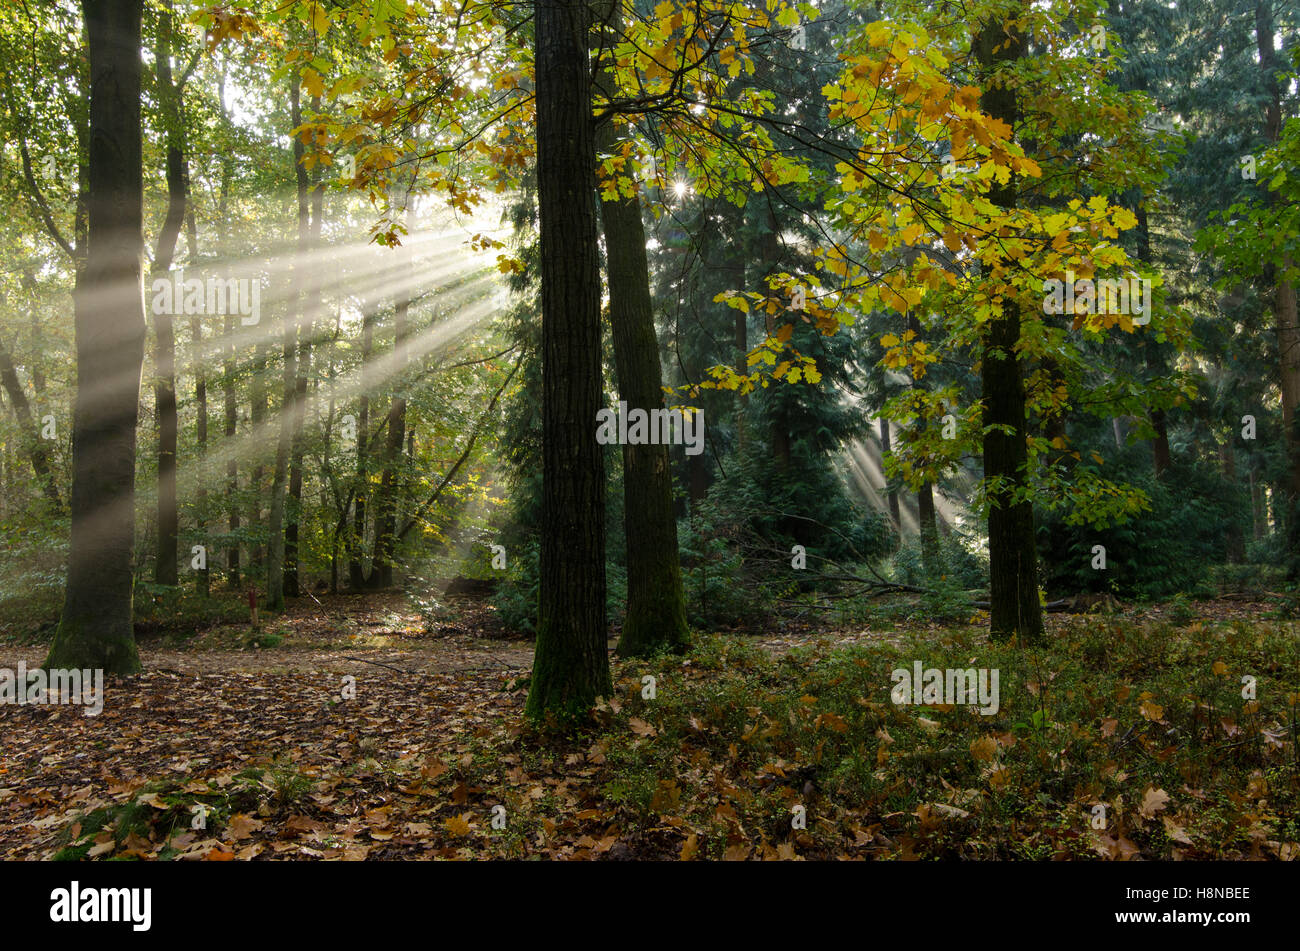 Sun rays or sun harp in an autumn forest with with Oak (Quercus rubra) trees - Stock Image